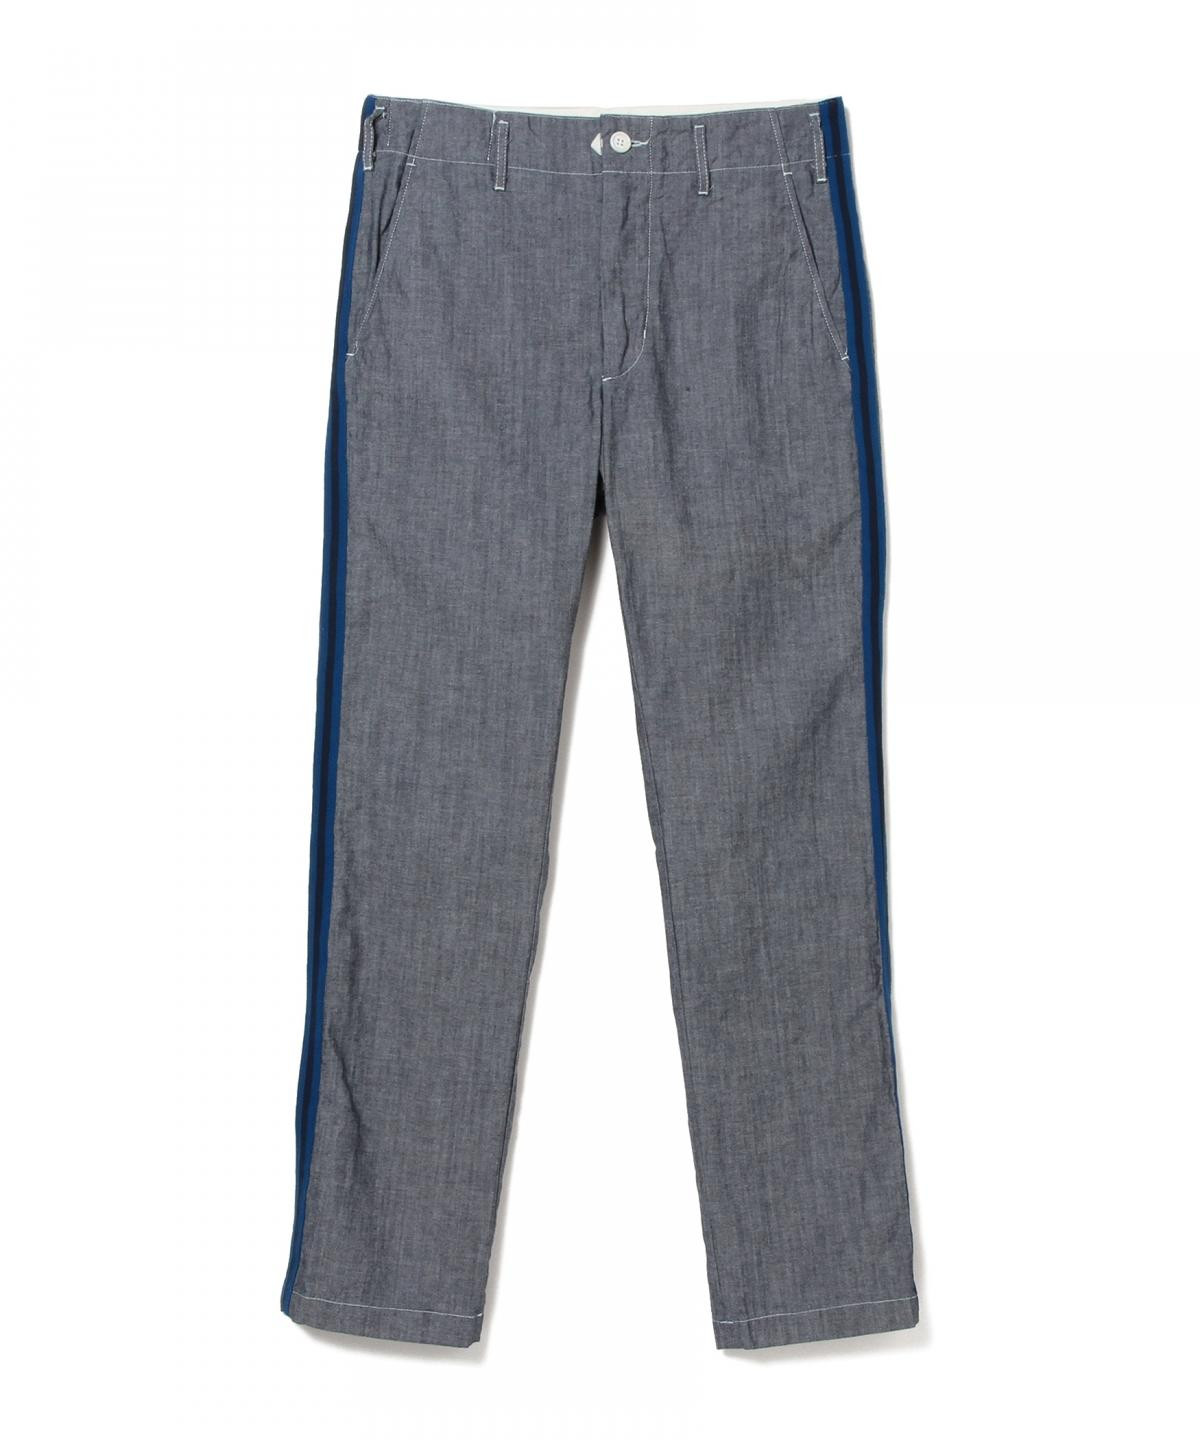 Prospect Pant (Cone Chambray)